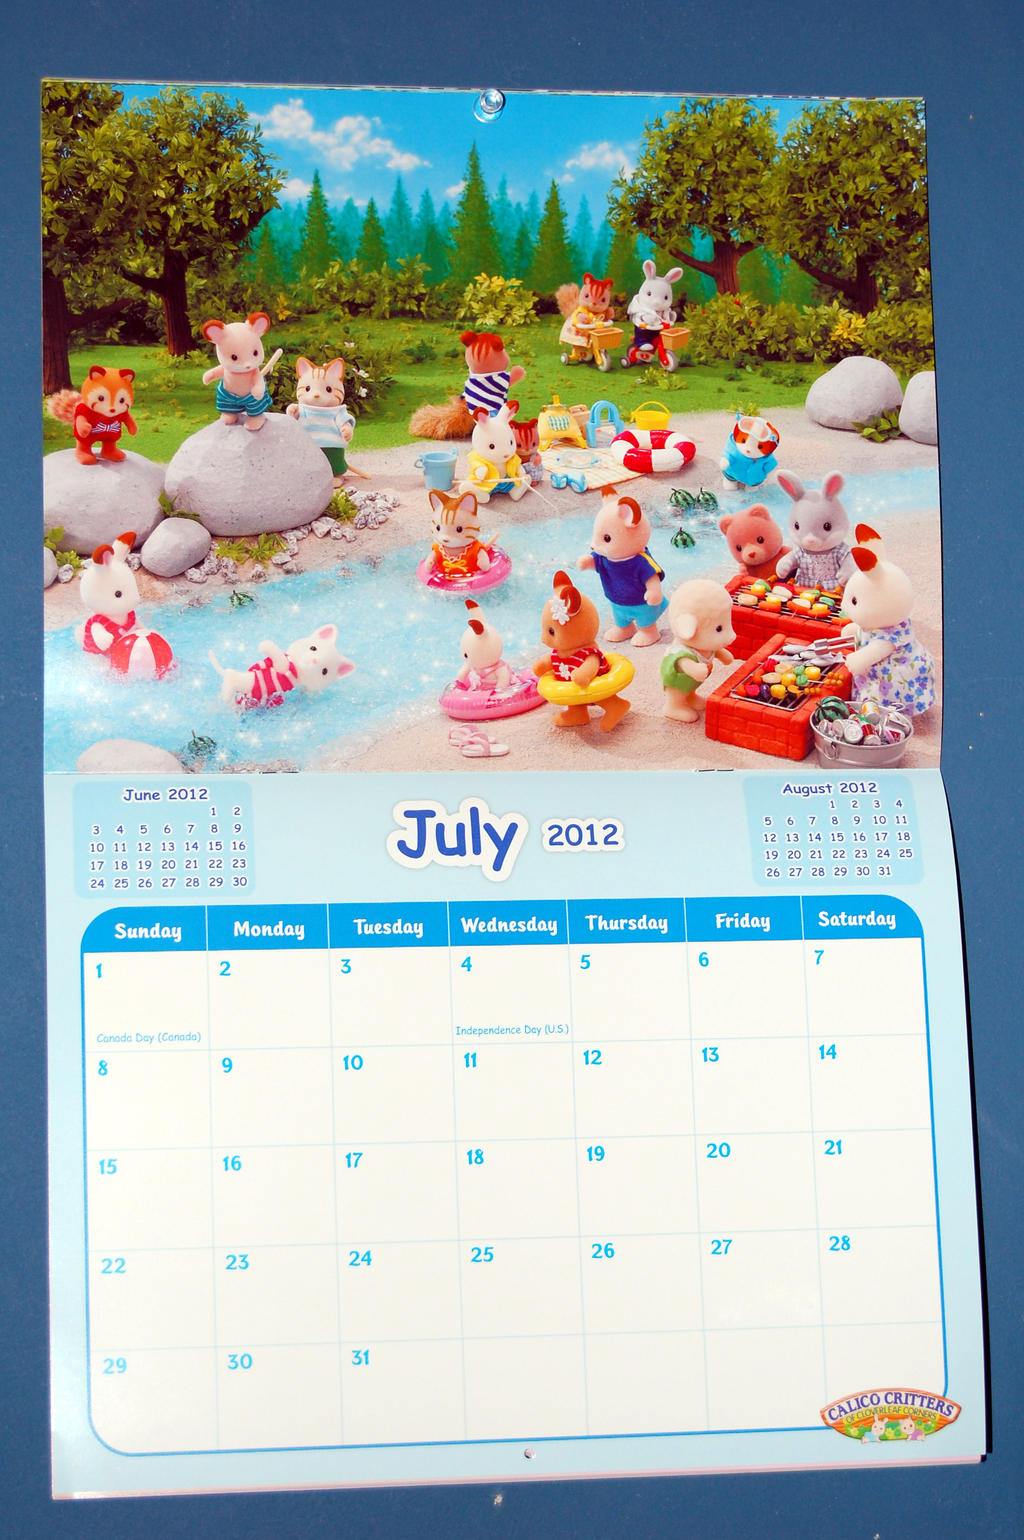 july 2012 calico critters calendar by rogue ranger on